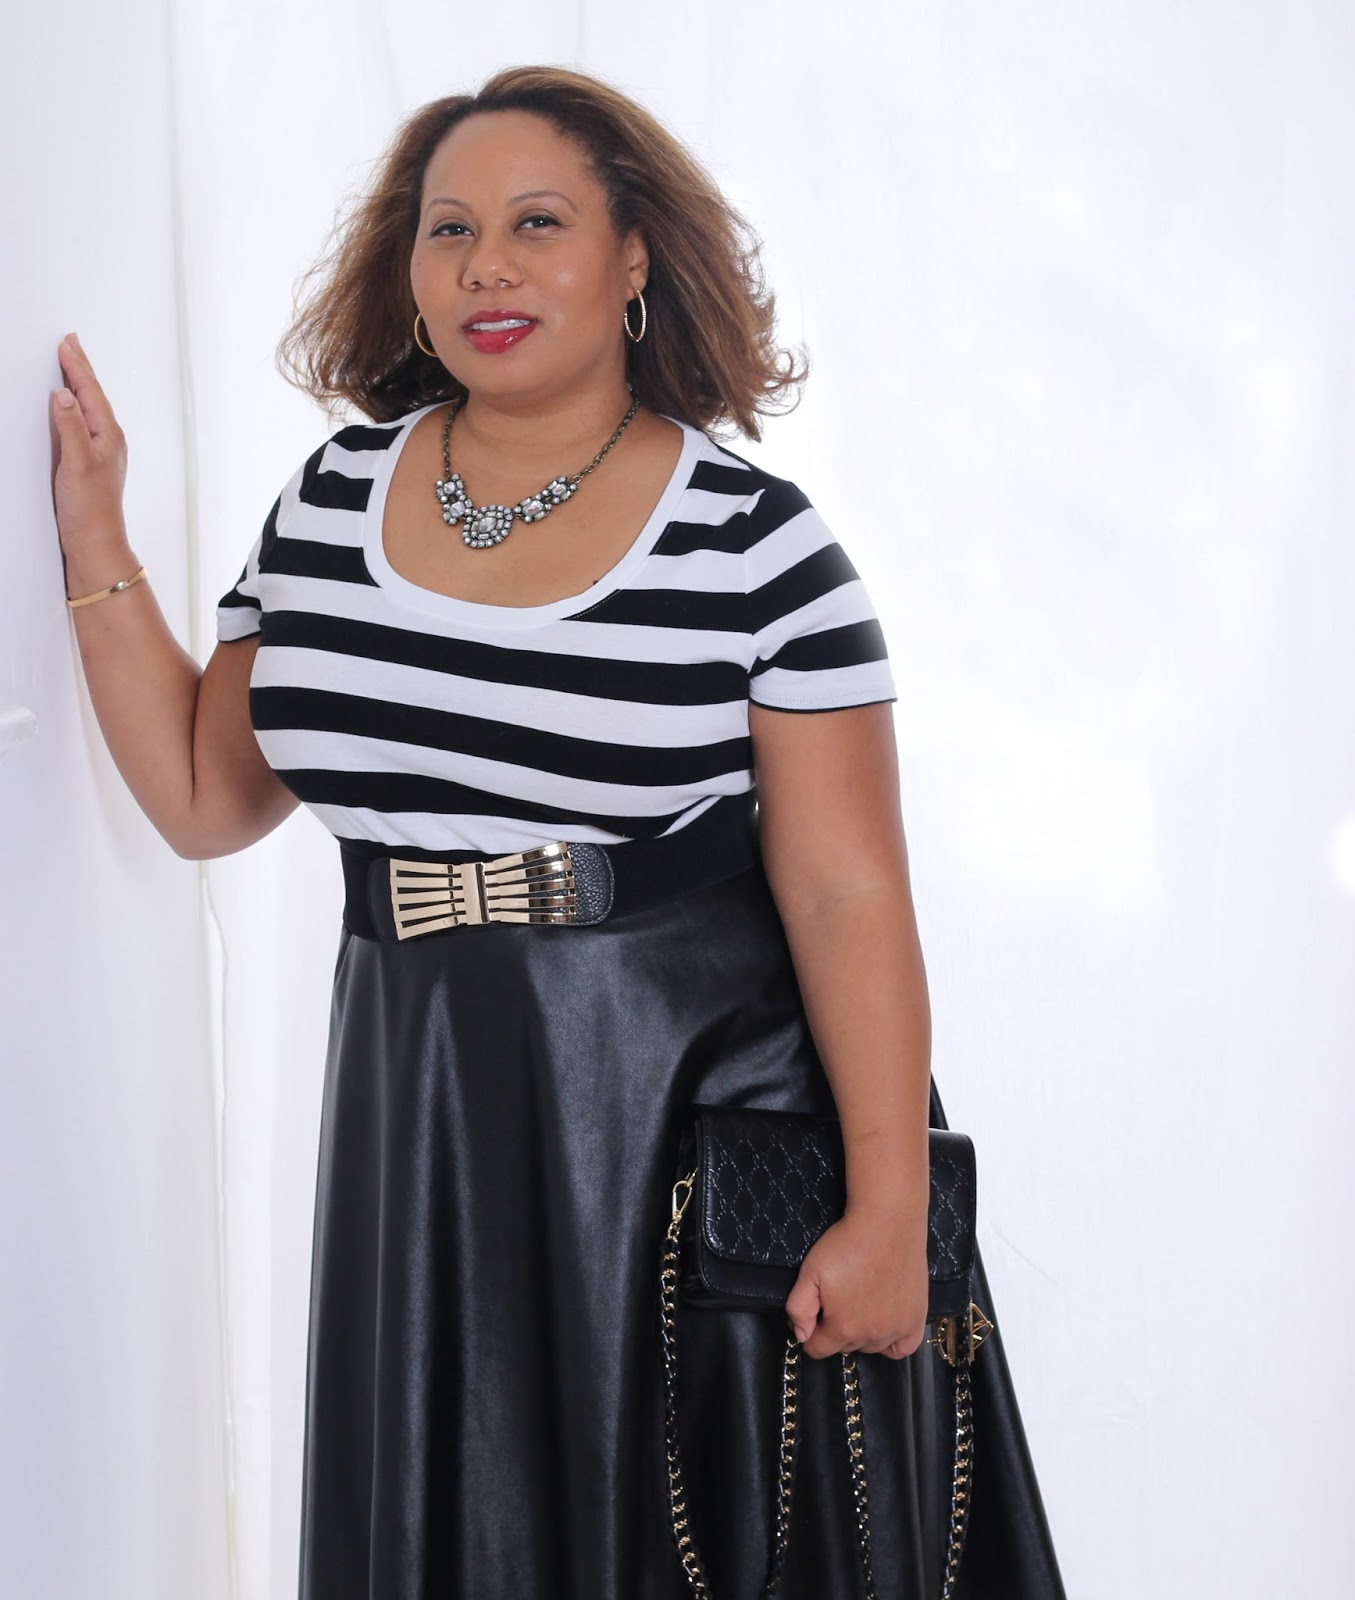 Try the Trend: Faux Leather   Dressy Casual   Fall Fashion   Curvy Outfit Ideas   Petite Outfit Ideas   Plus Size Fashion   OOTD   Professional Casual Chic Fashion and Style Inspiration